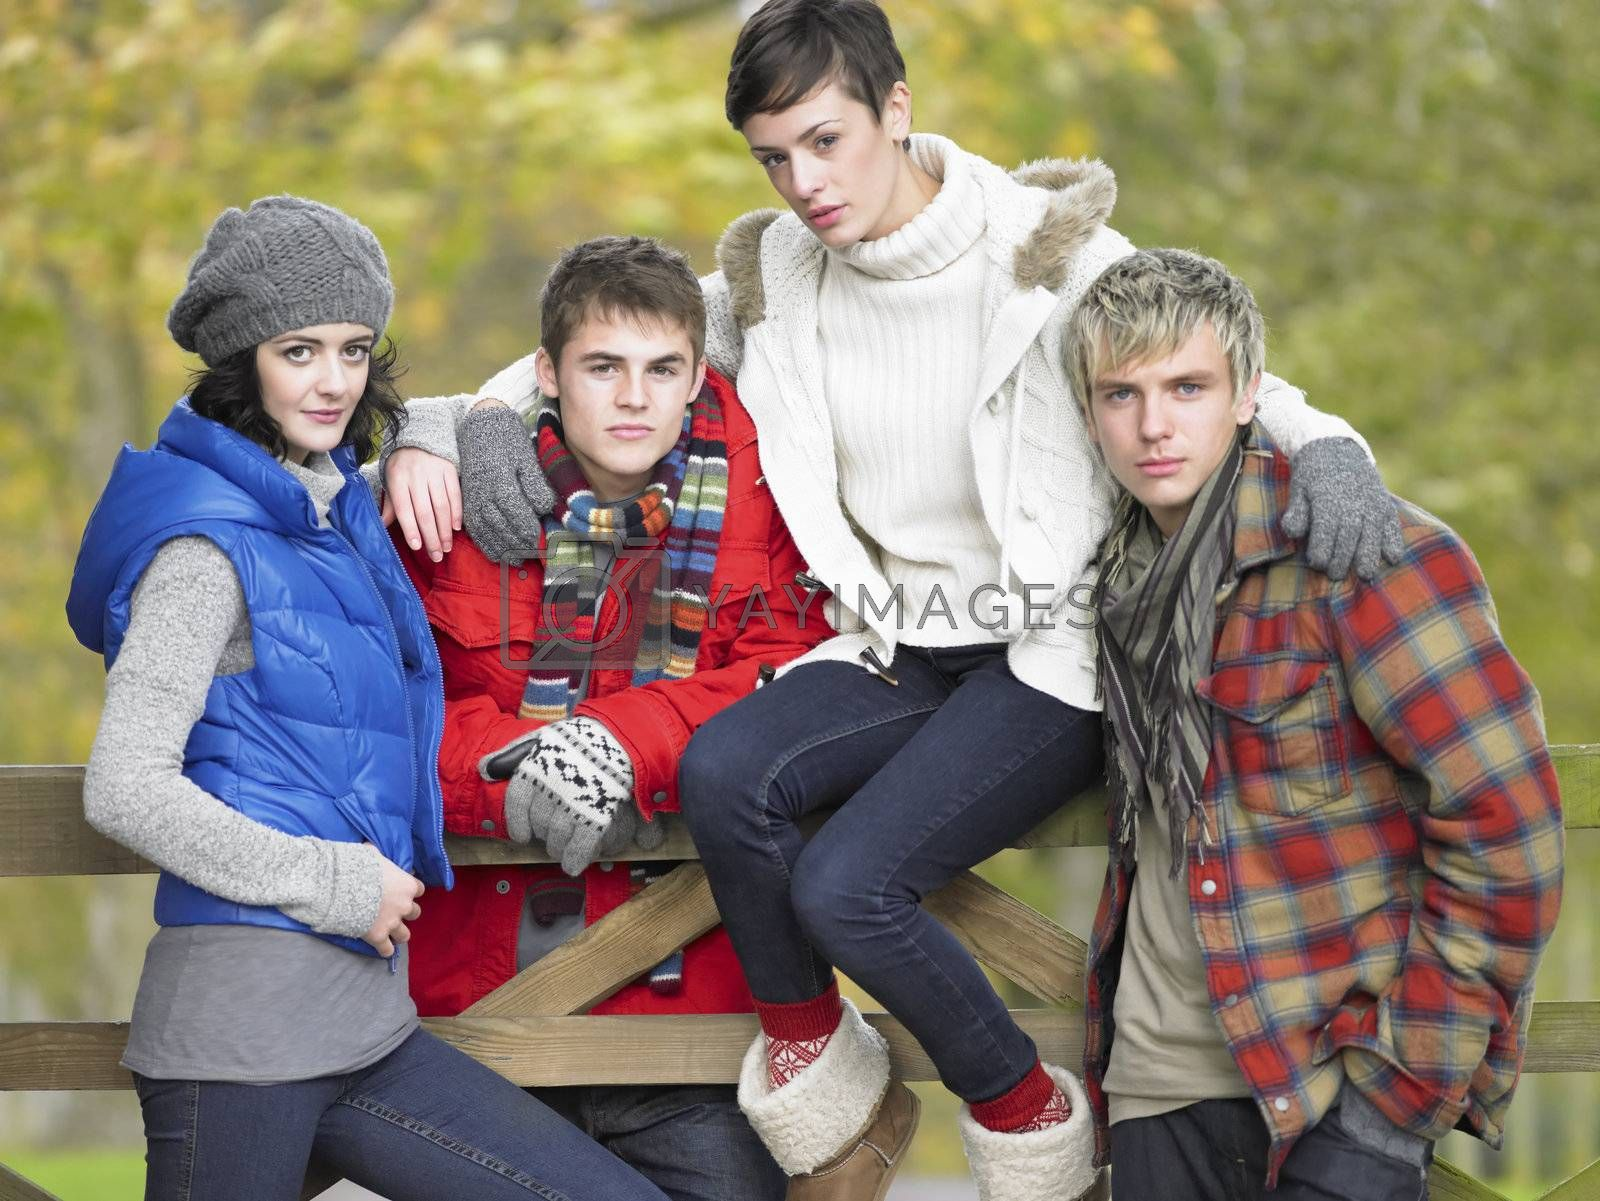 Royalty free image of Young friends sitting on fence by omg_images